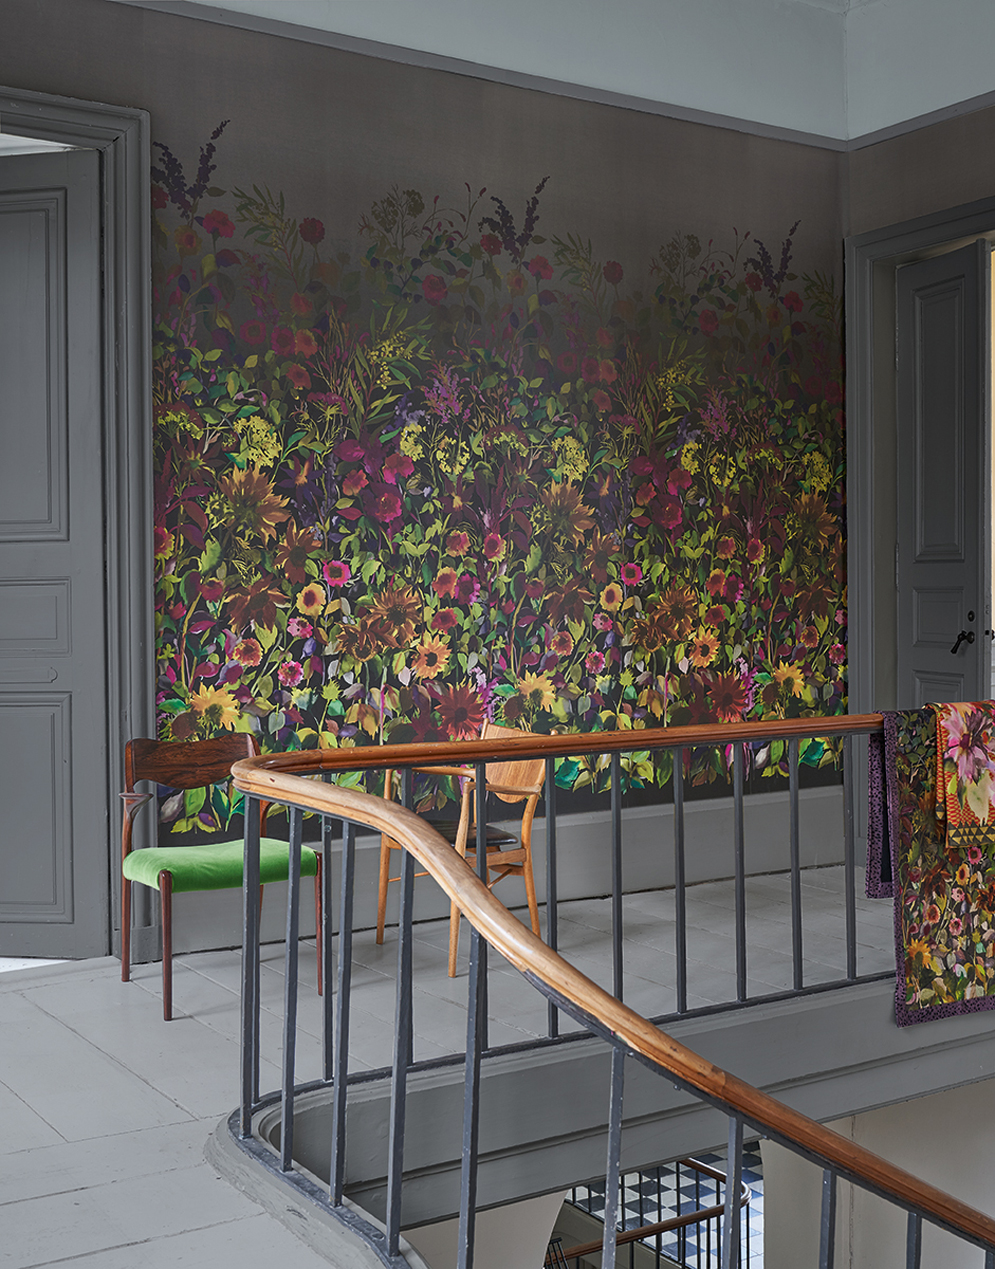 Designers Guild, Zardozi - Indian Sunflower wallpaper<div style='clear:both;width:100%;height:0px;'></div><span class='cat'>Designers Guild</span>